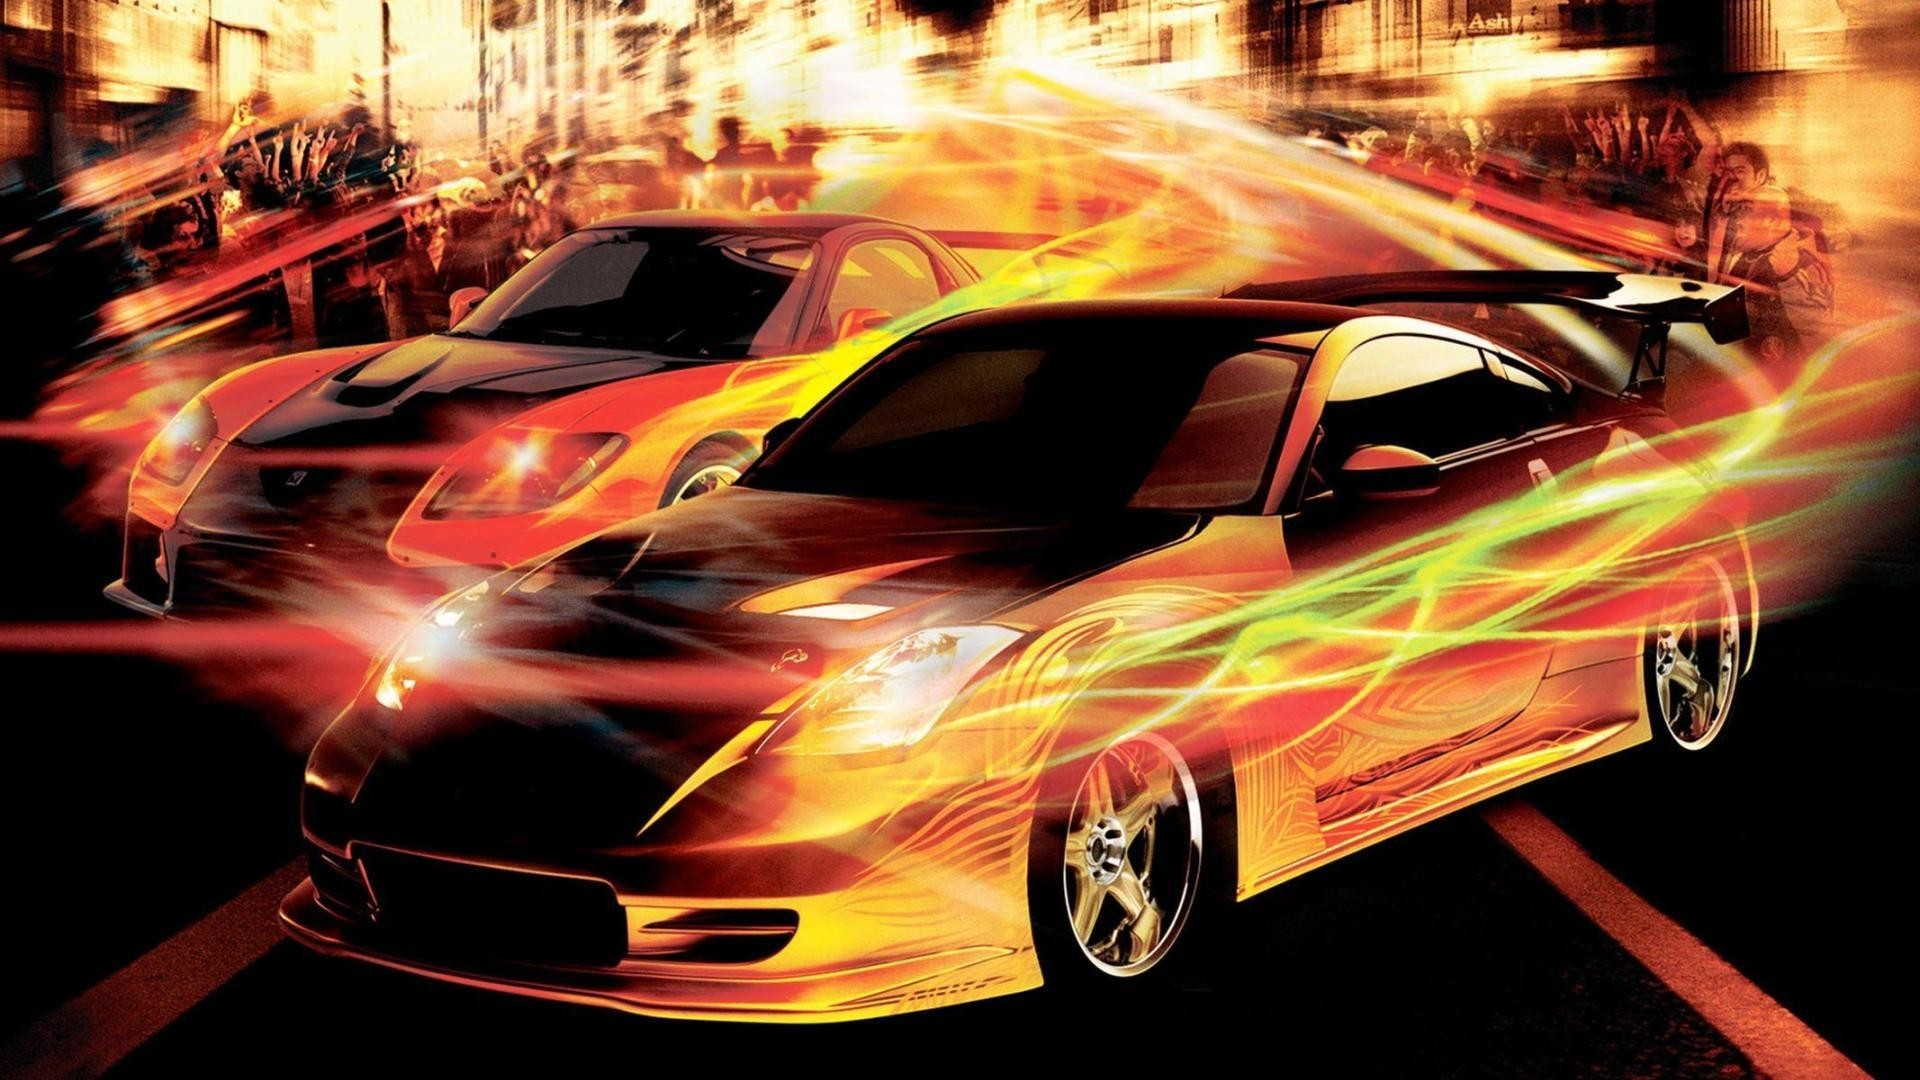 Free download FAST AND THE FURIOUS TOKYO DRIFT tuning wallpaper background  [1920x1080] for your Desktop, Mobile & Tablet | Explore 74+ Fast And Furious  Backgrounds | Fast And Furious Wallpaper,